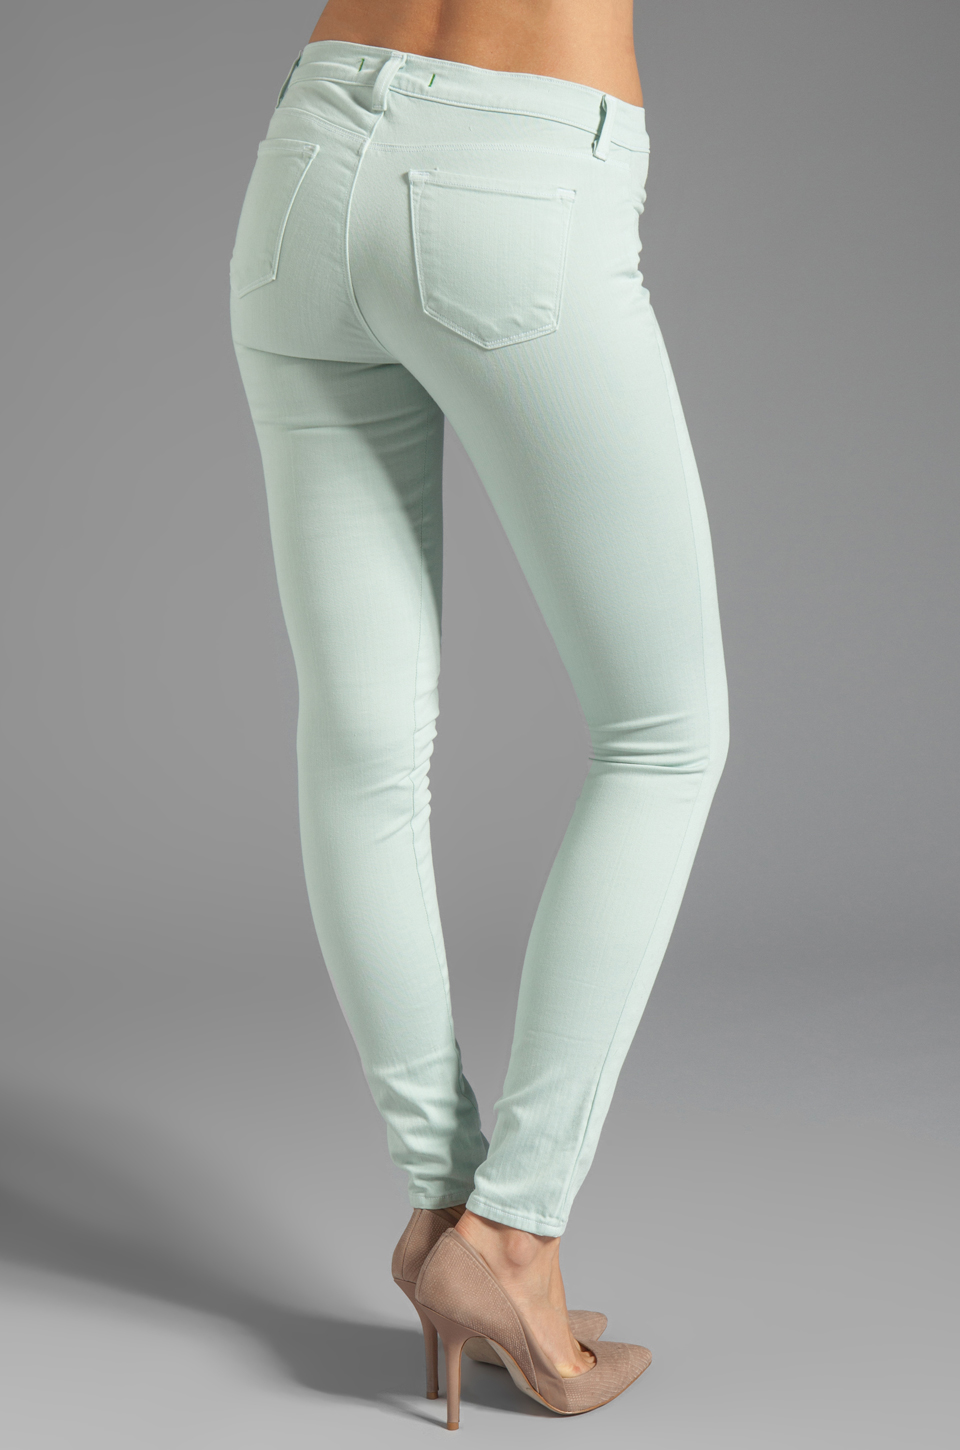 J Brand Midrise Power Stretch Super Skinny in Glass